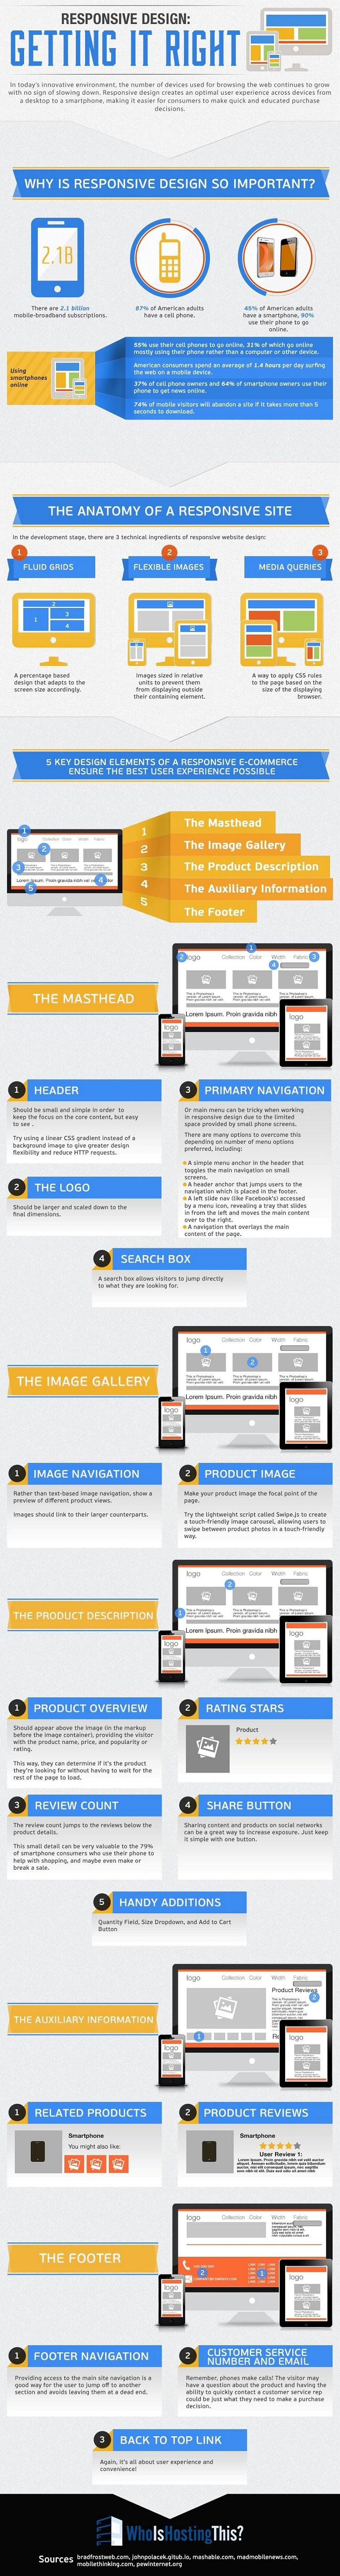 responsive-design-getting-it-right-infographic-mprofs